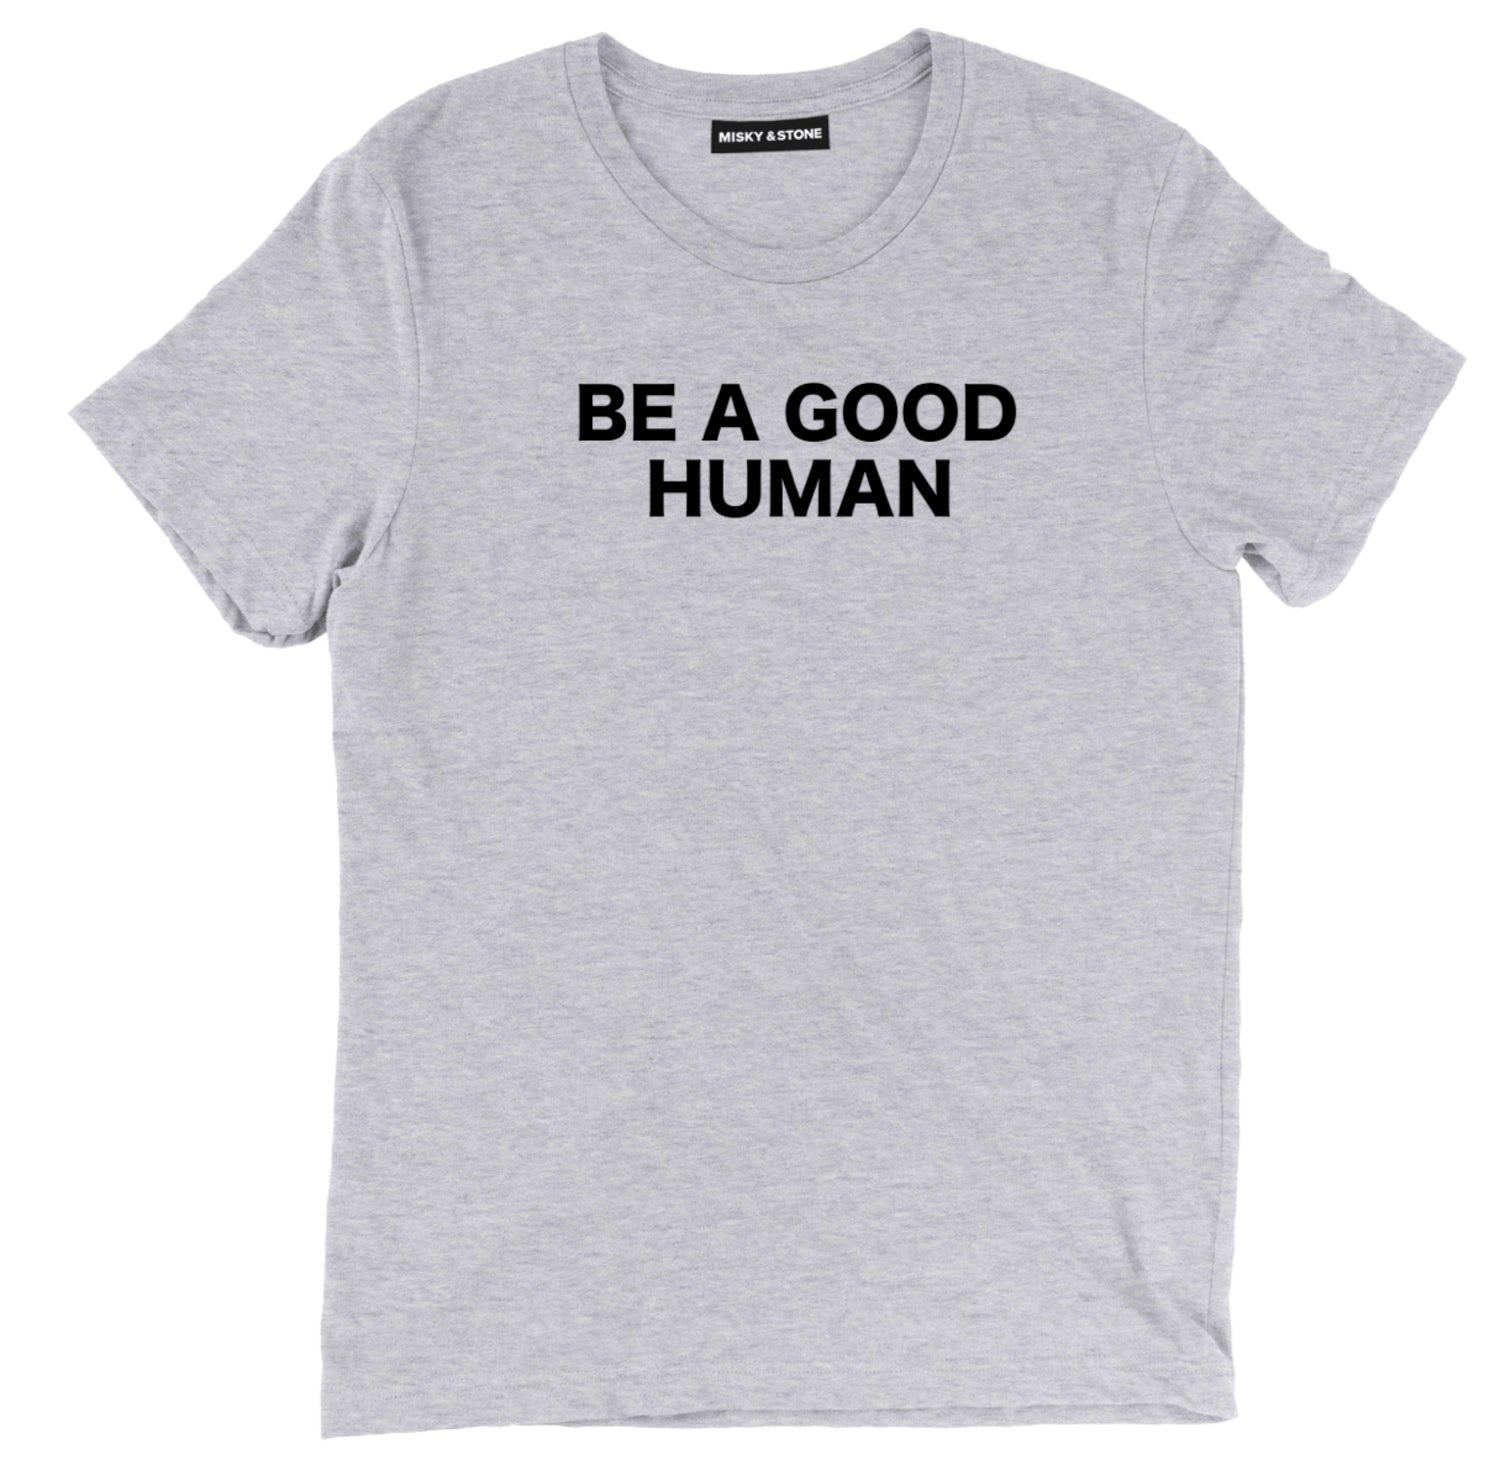 be a good human love tee shirt, be a good human love apparel, be a good human love merch, Good Human love clothing, spiritual tee shirt